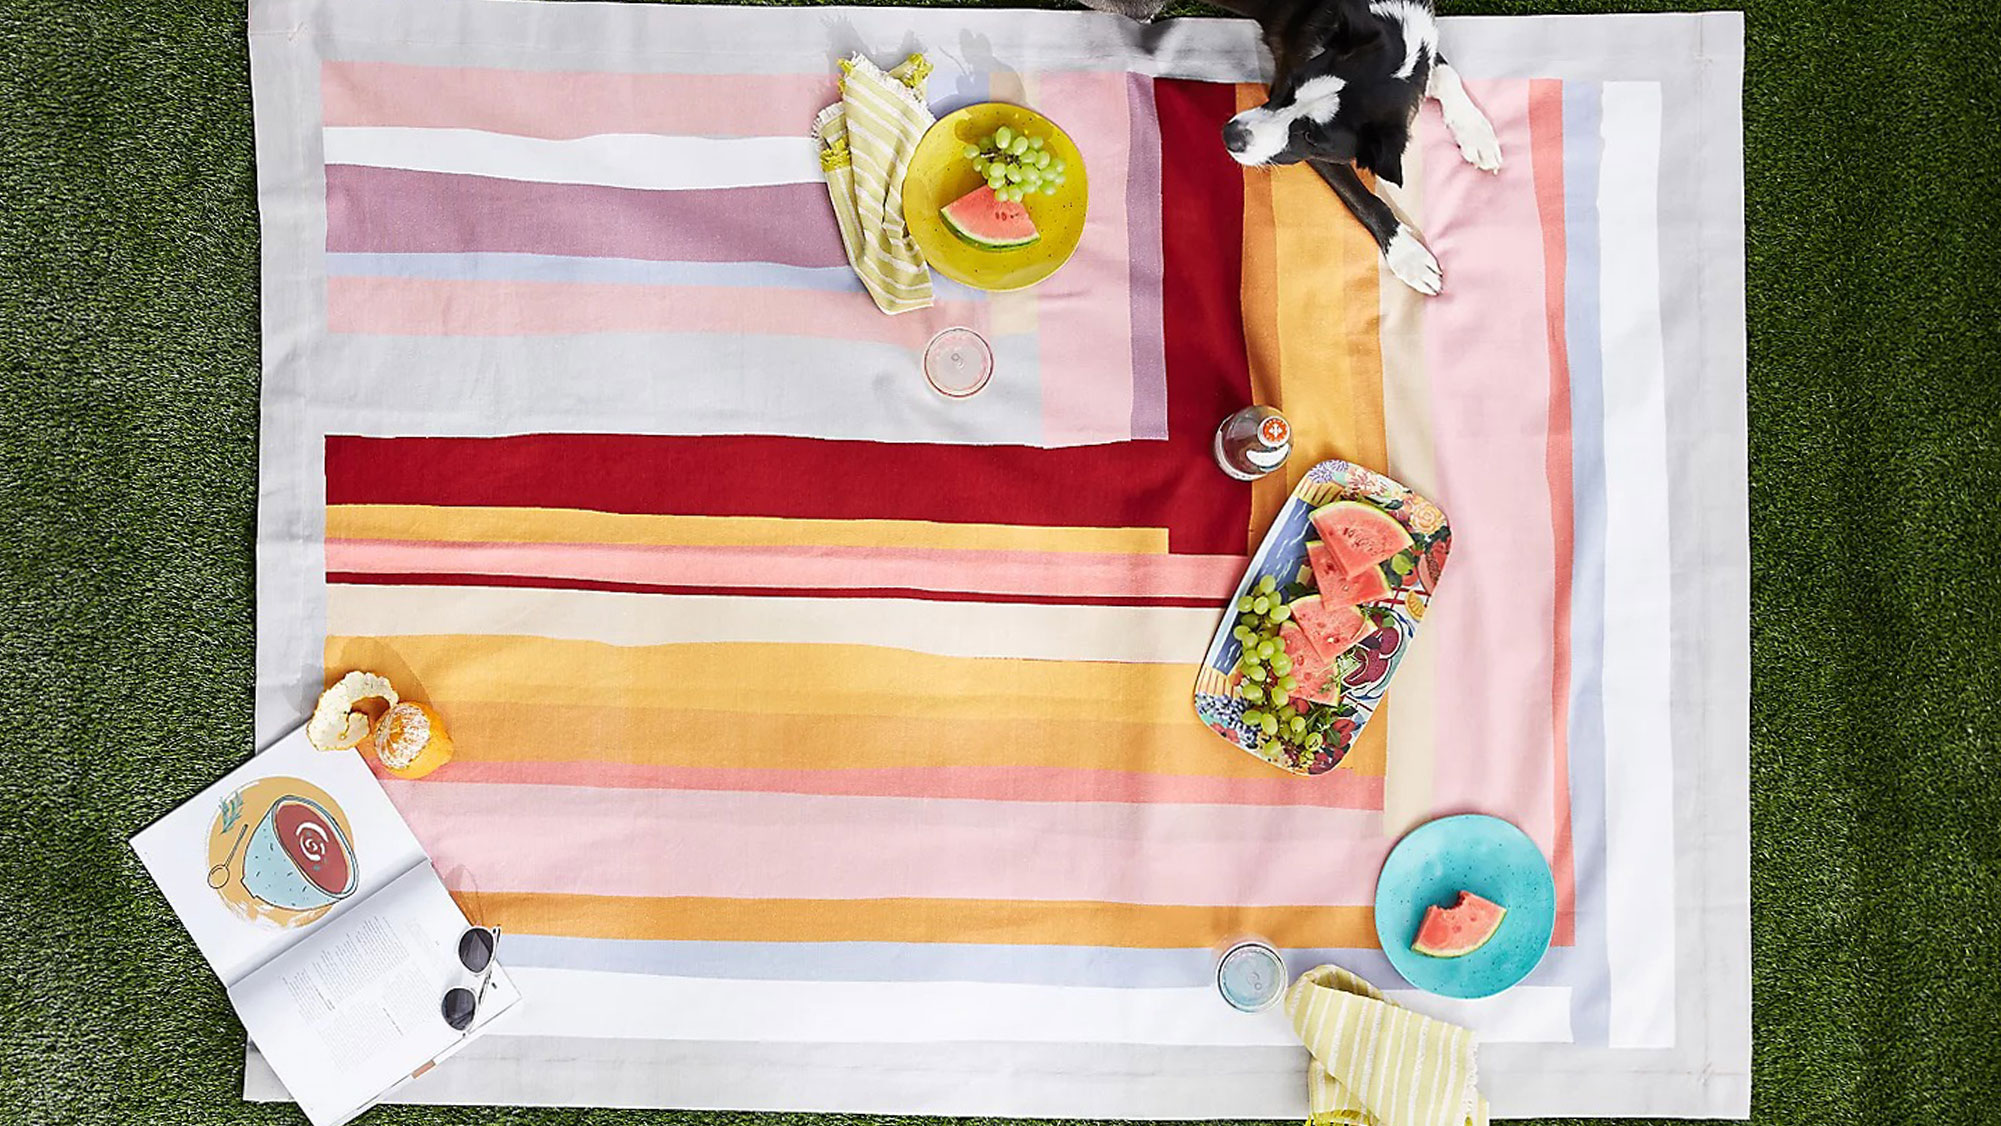 Picnic & Outdoor Blanket Dual Layers for Outdoor Water-Resistant: best picnic blankets